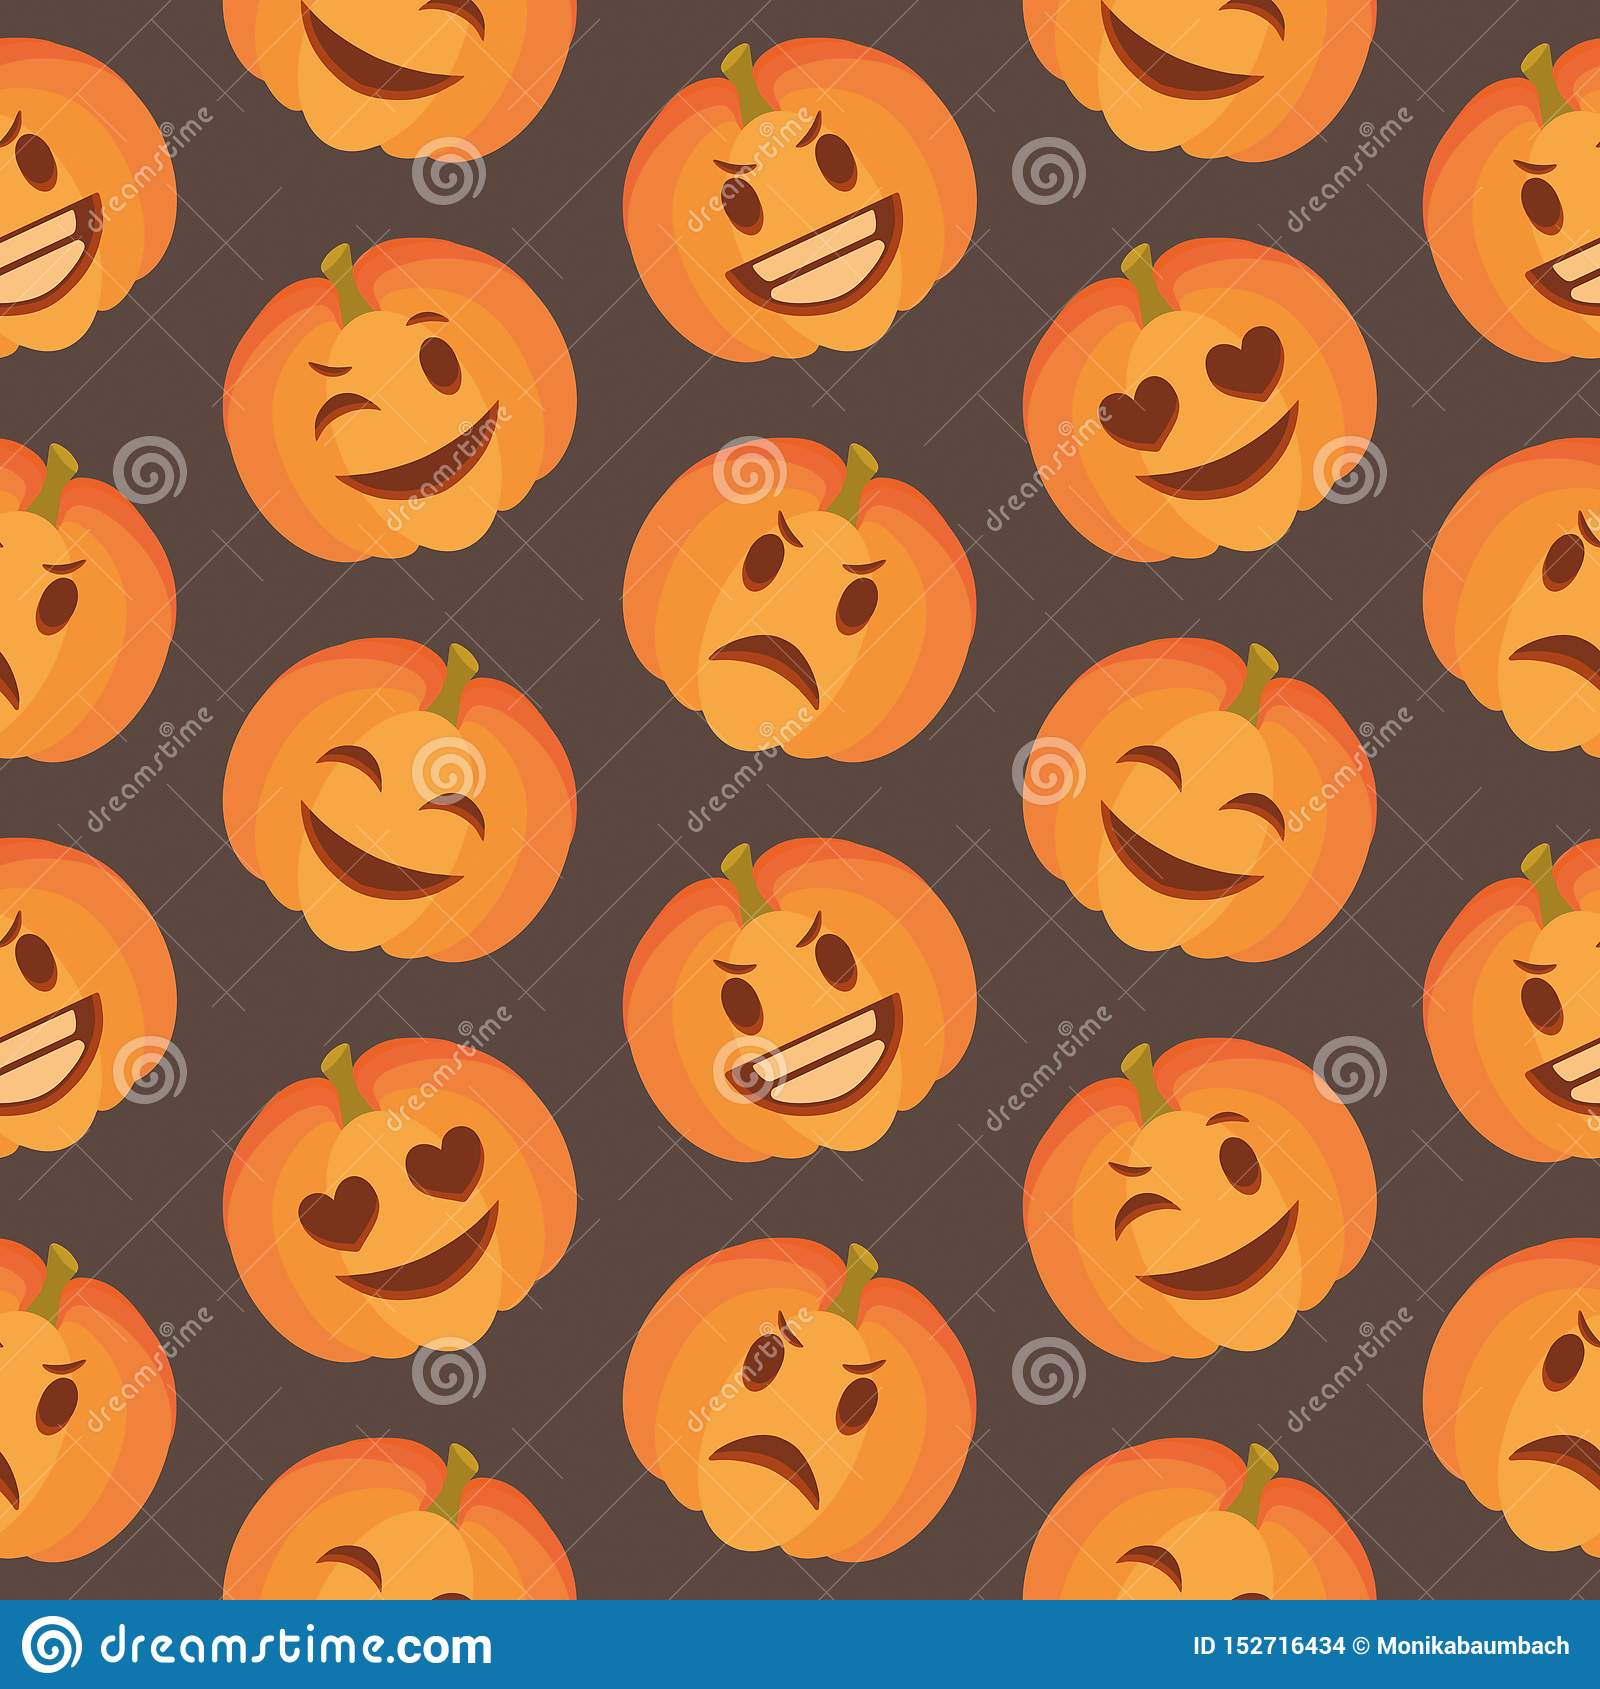 Seasonal Cute Halloween Seamless Pattern With Happy And Sad